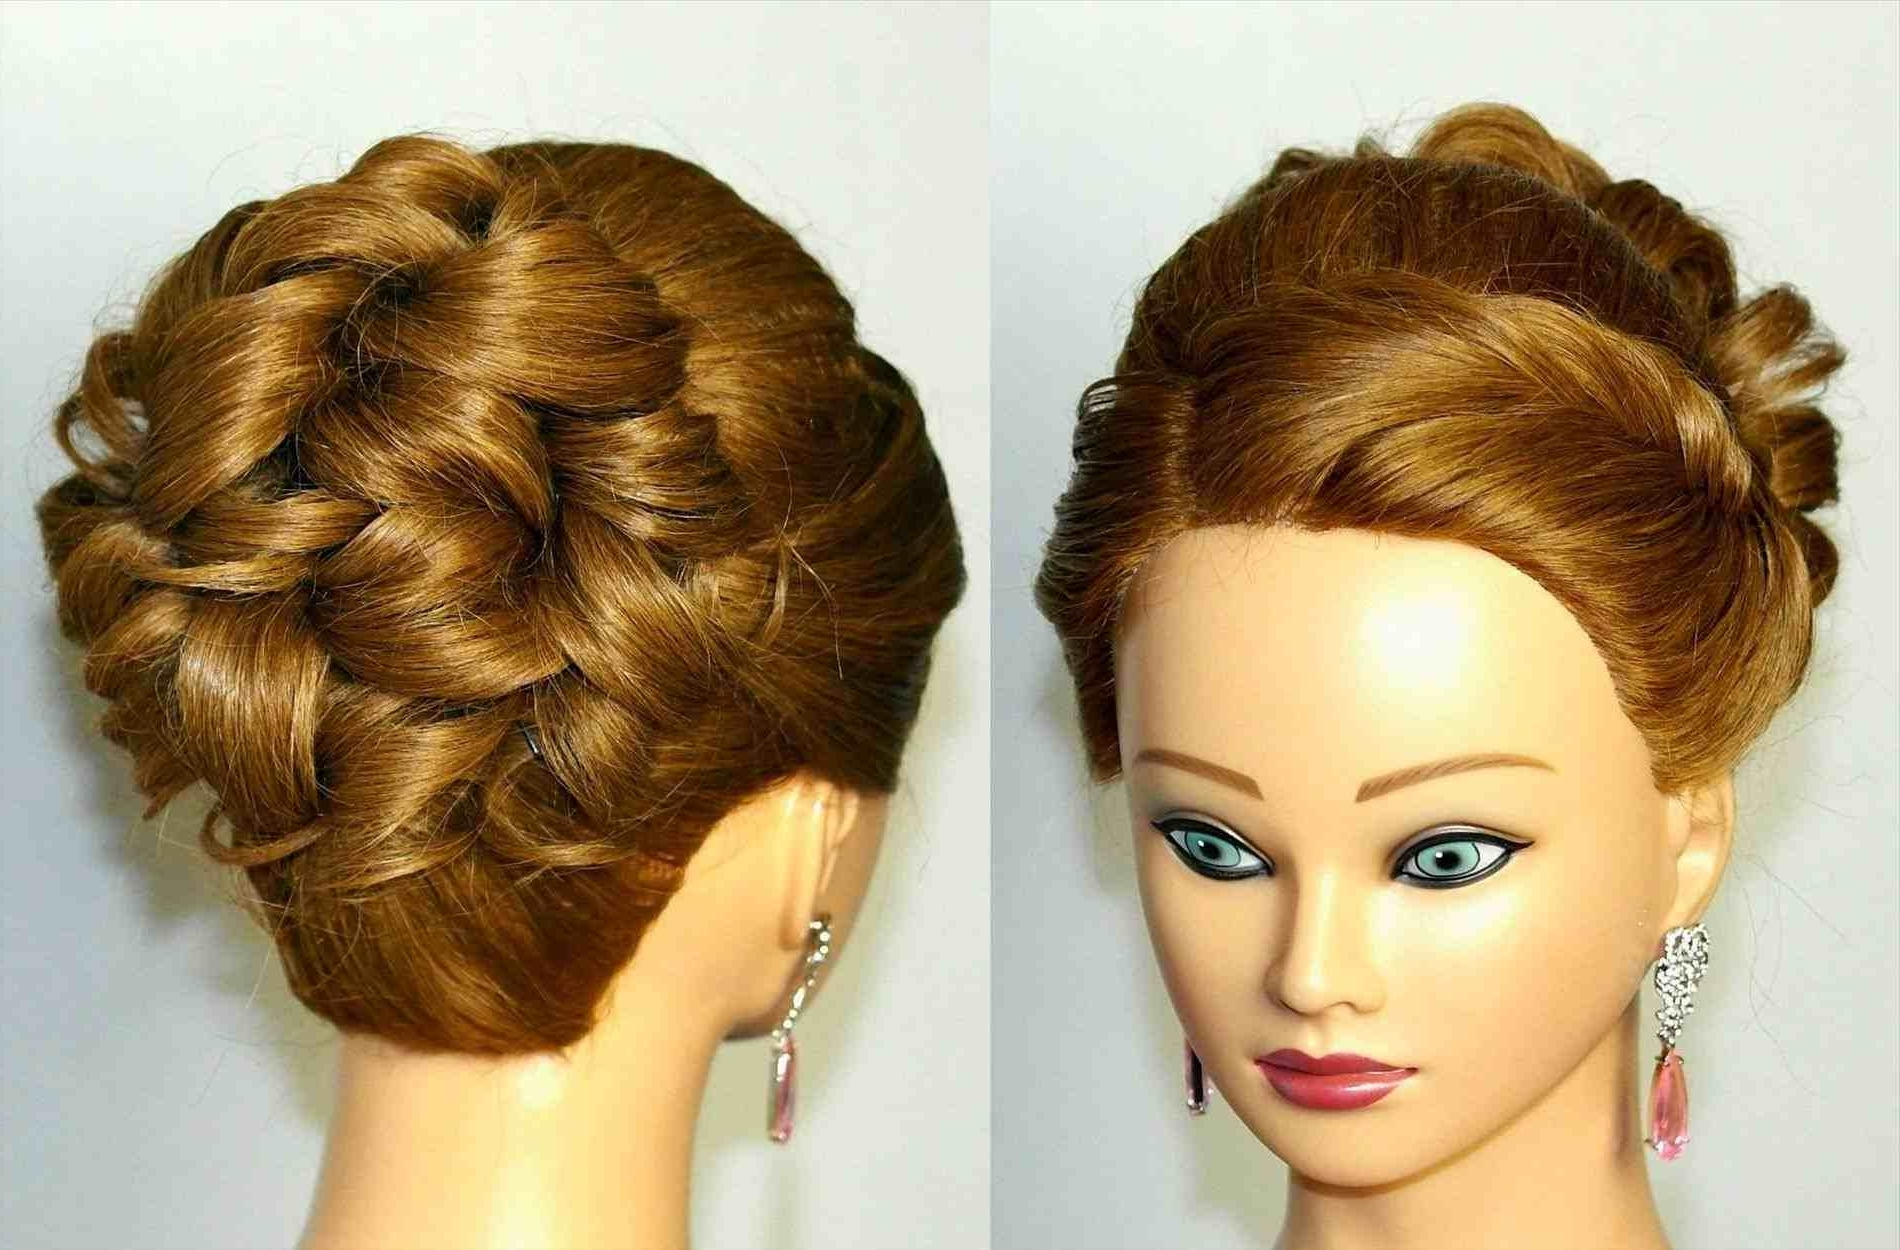 Incredible Easy Hair For Medium Length Curly Updo Pic Of And Style Regarding Updos For Medium Length Curly Hair (View 8 of 15)